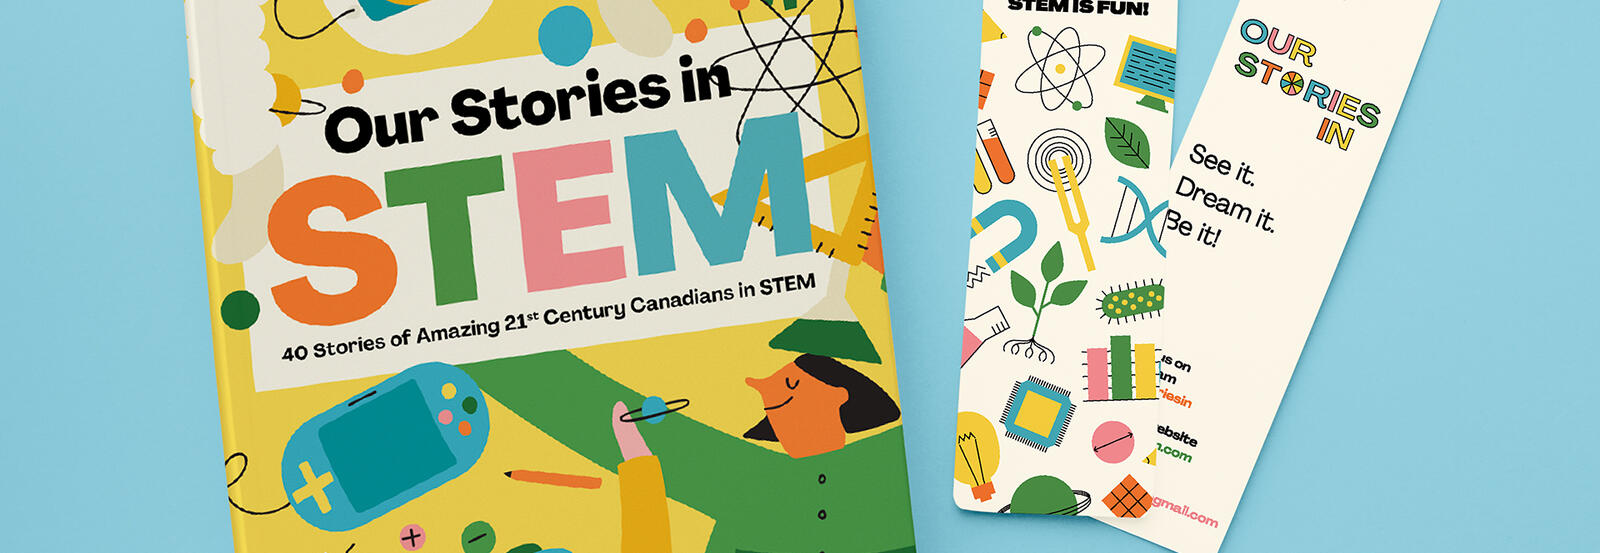 Our stories in STEM book